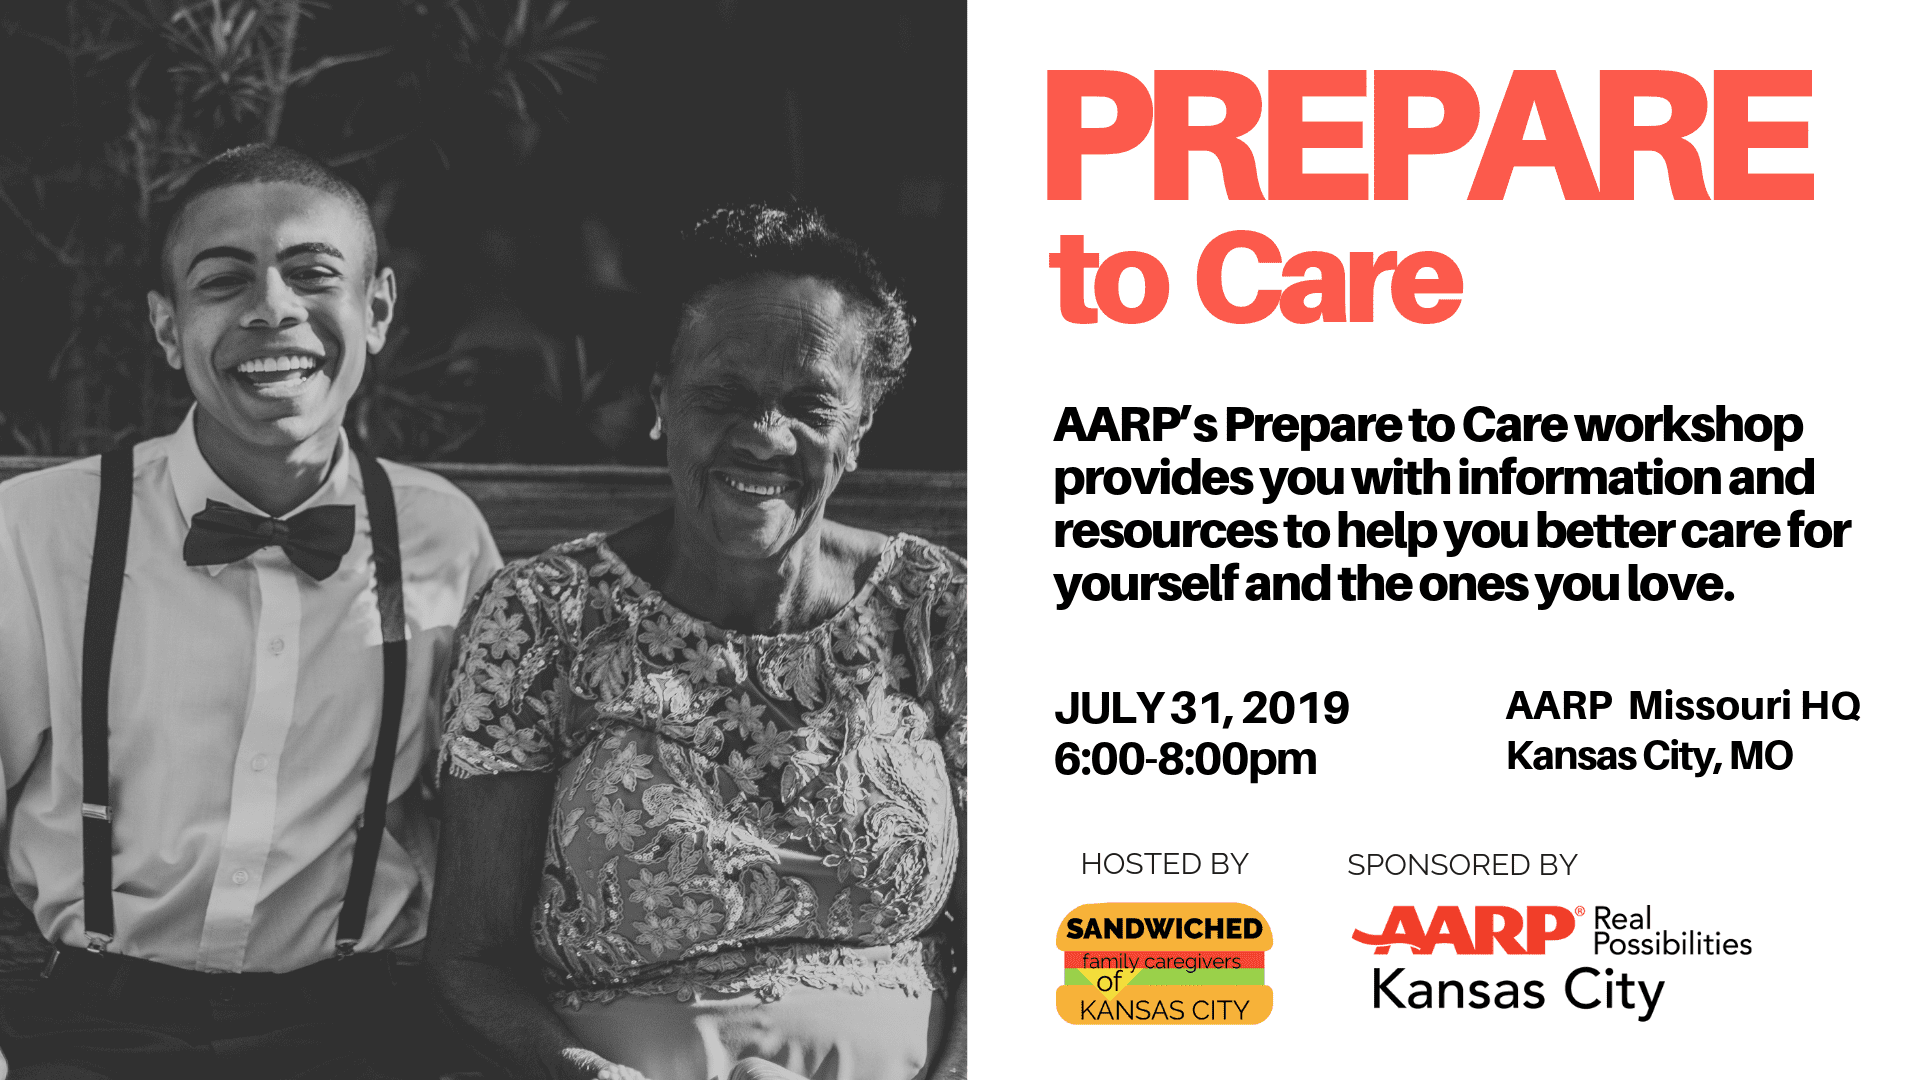 Banner: Prepare to Care AARP MO Office July 31, 2019 6:00-8:00pm